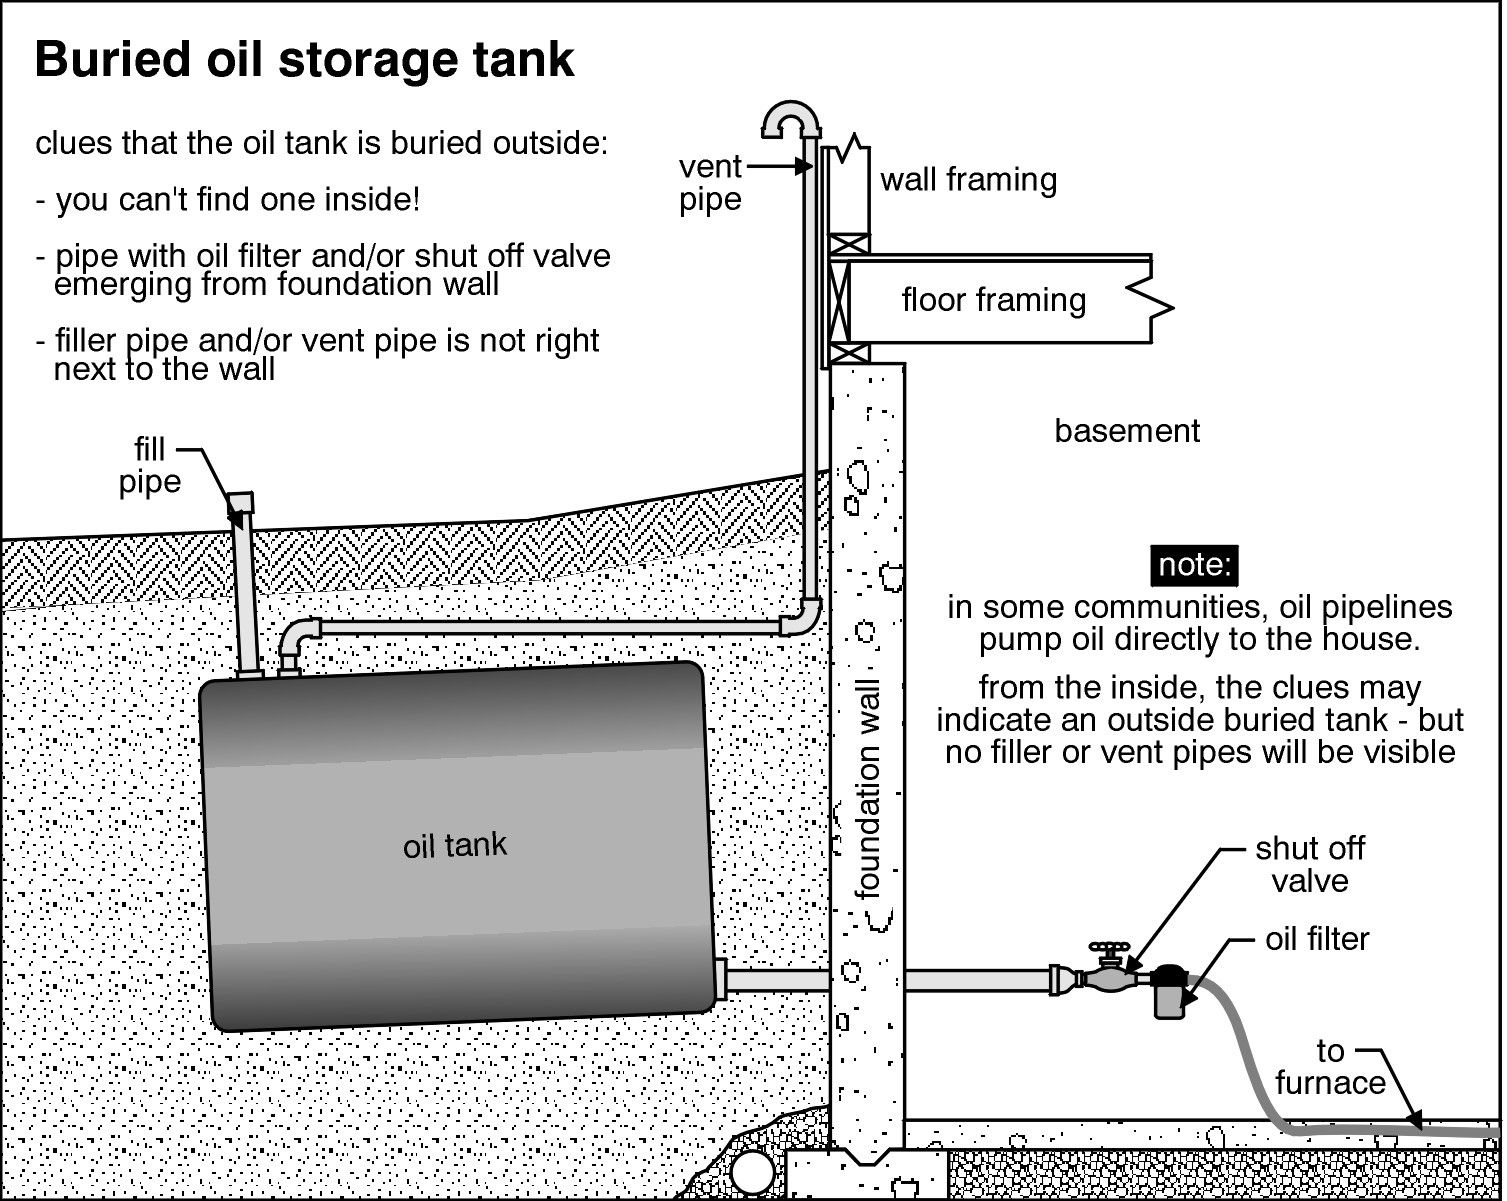 Pin About Oil Storage Storage And Heating Oil On About